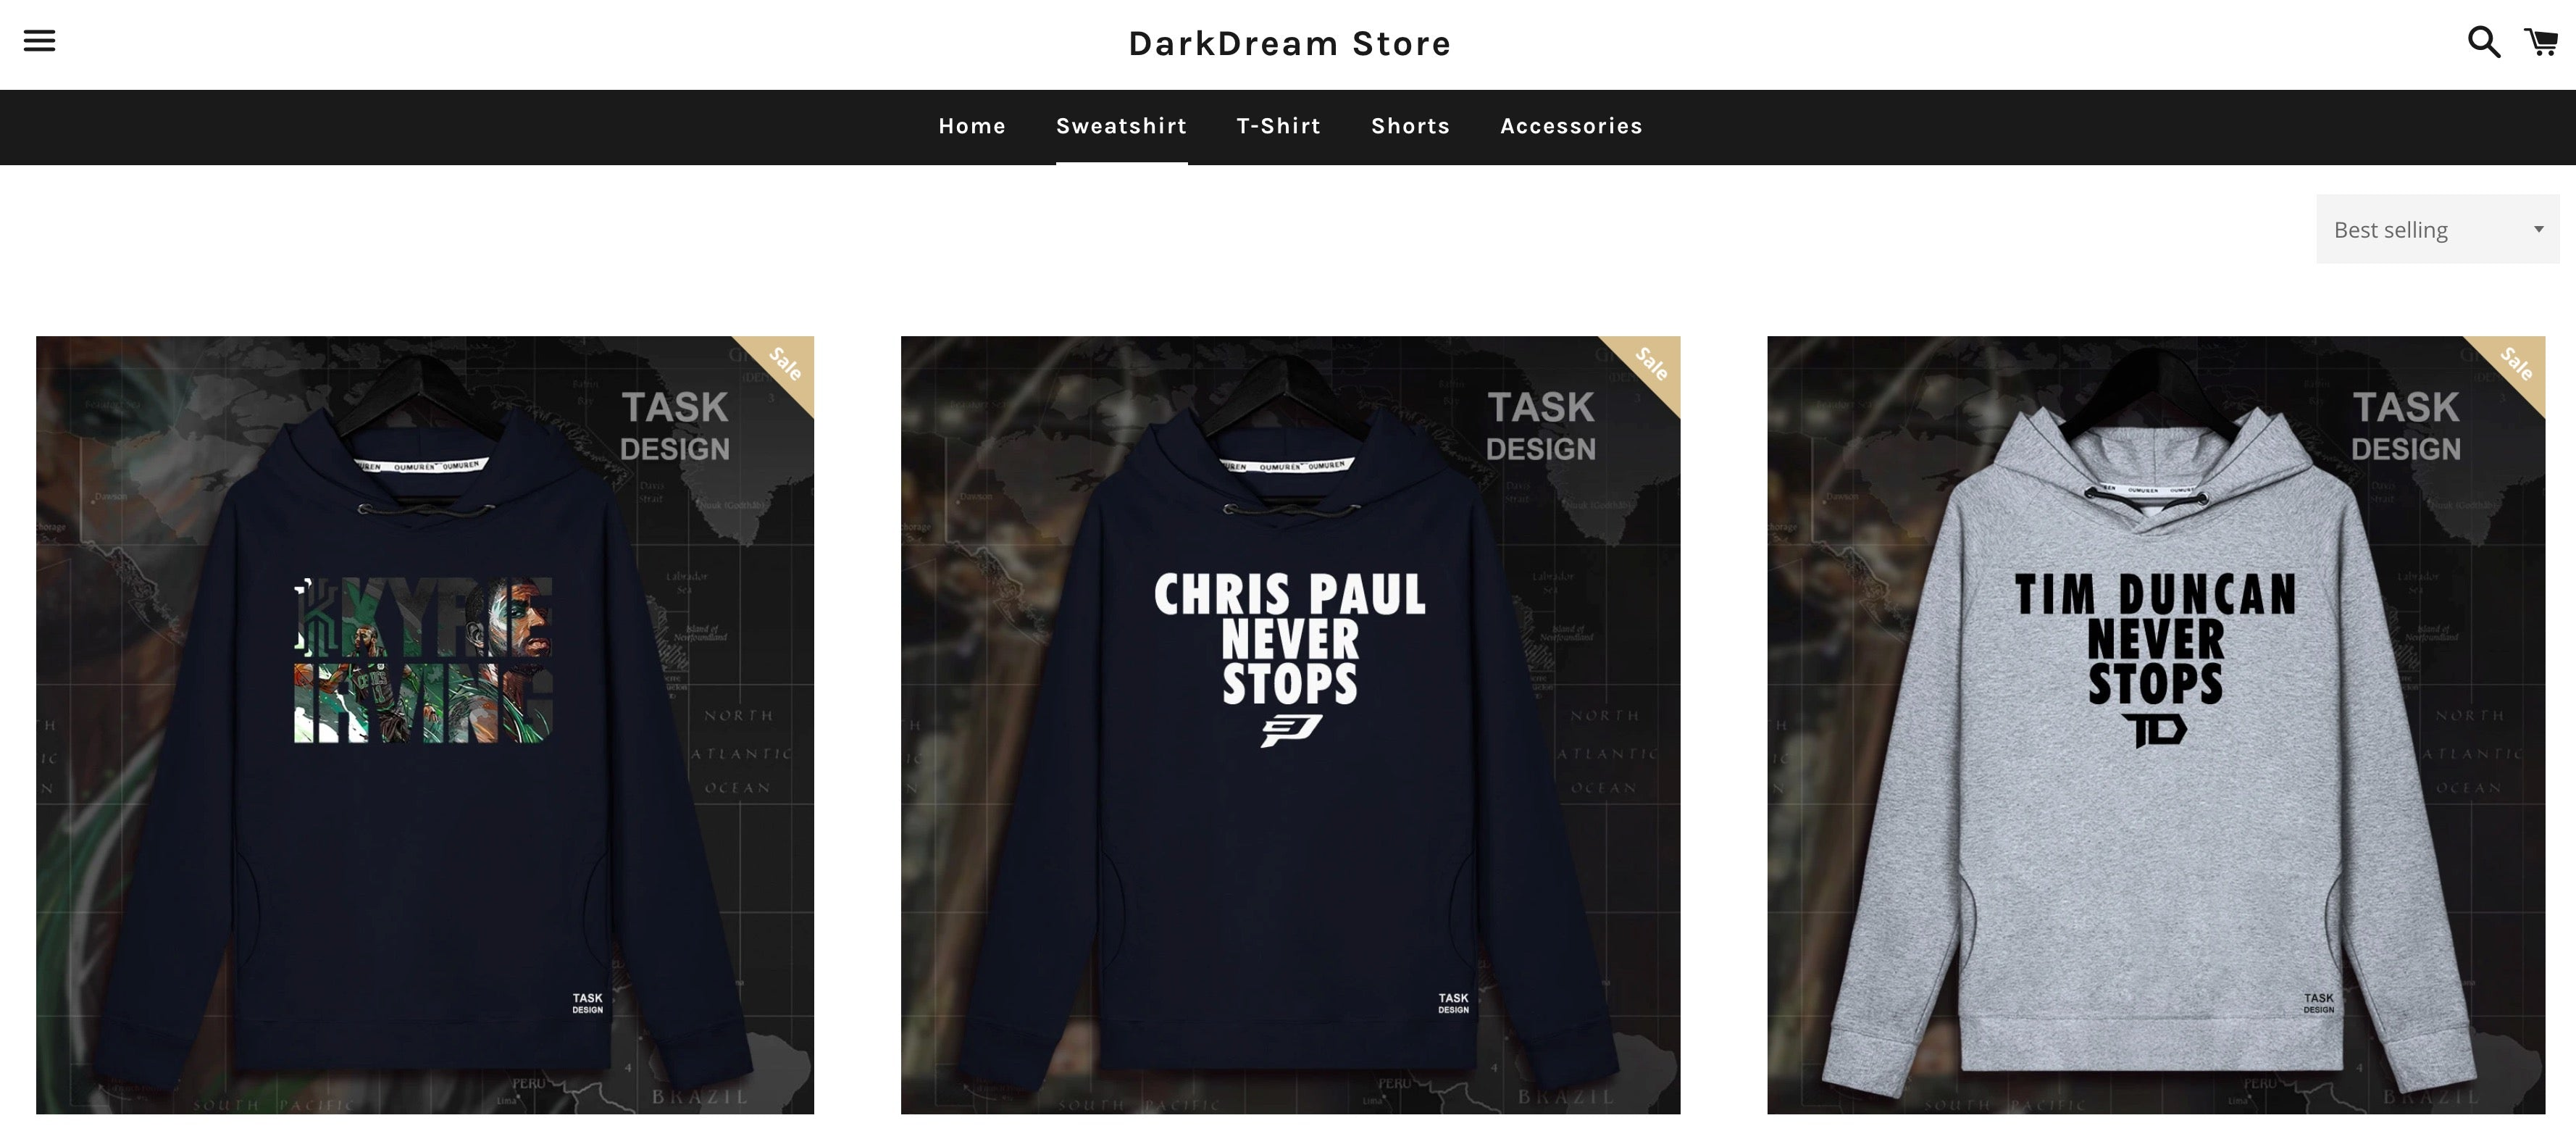 darkdream store